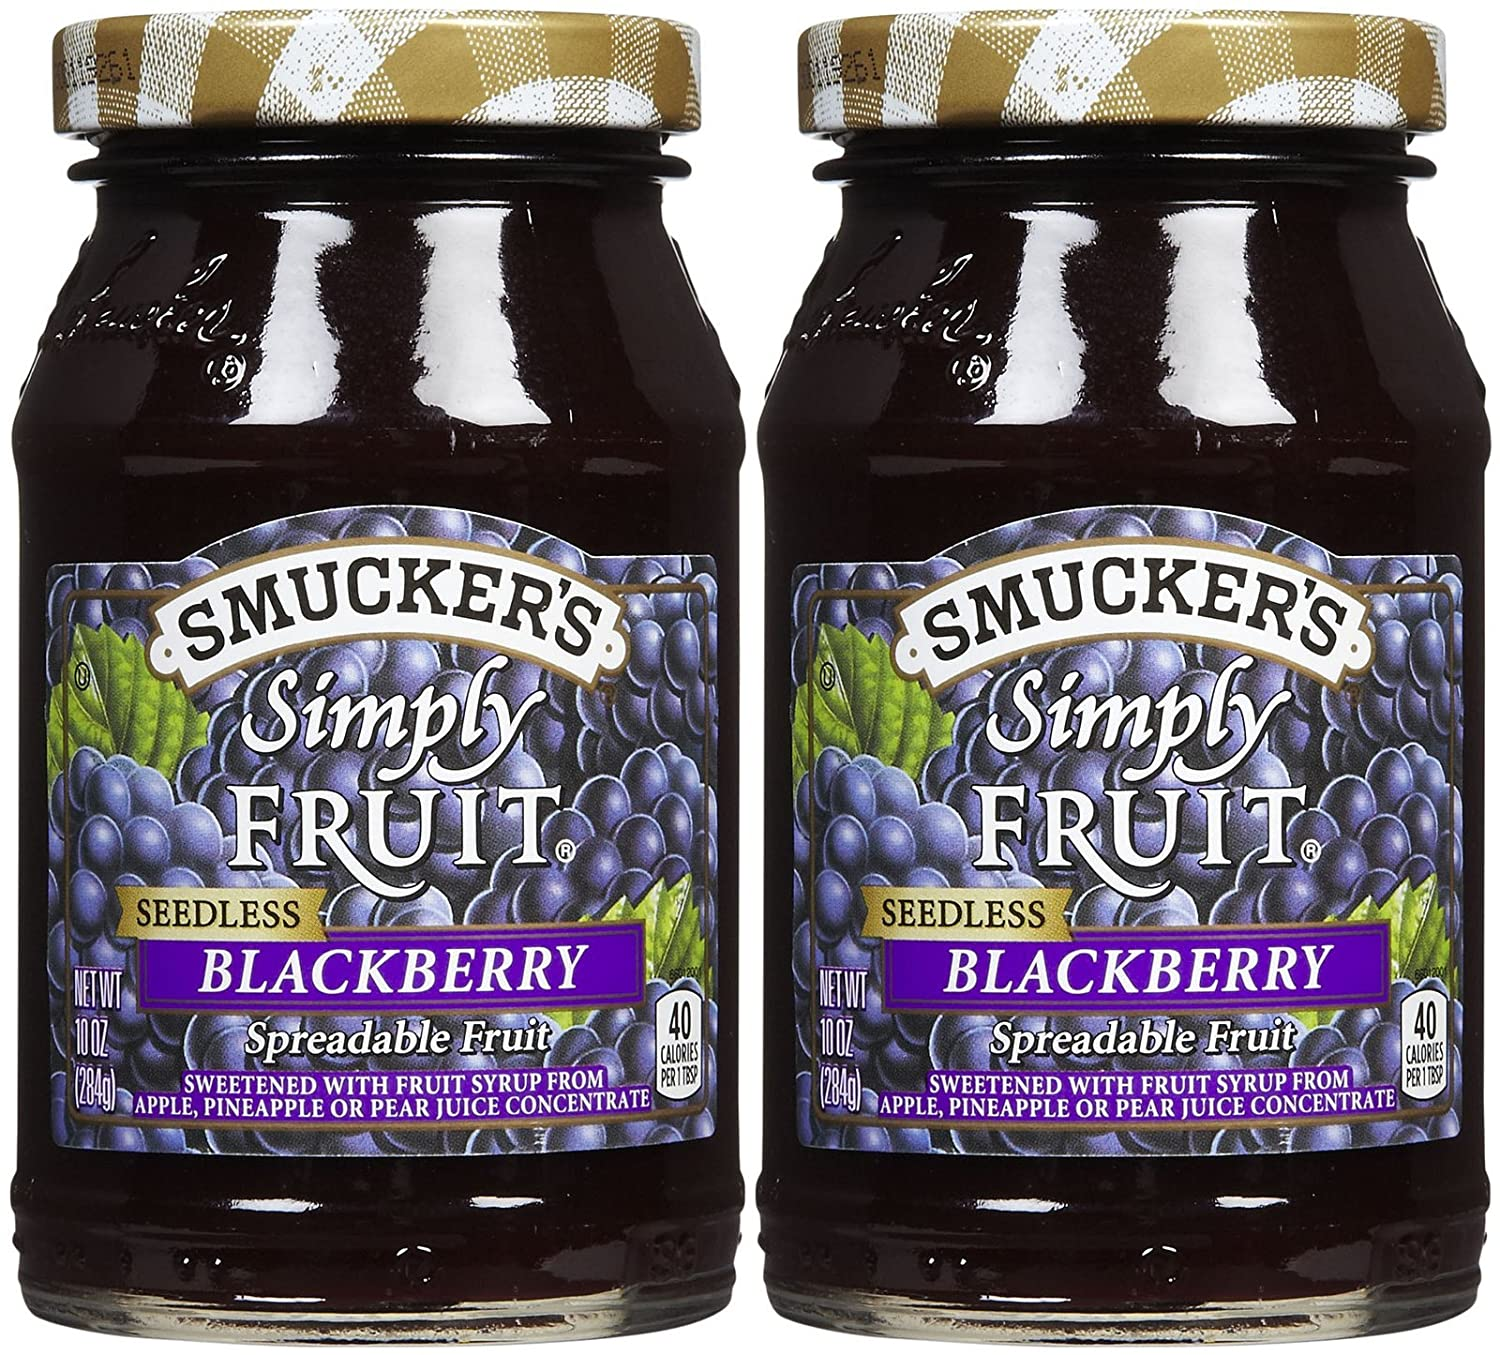 Smucker's Simply Fruit Seedless BlackBerry Spread, 10 oz, 2 pk